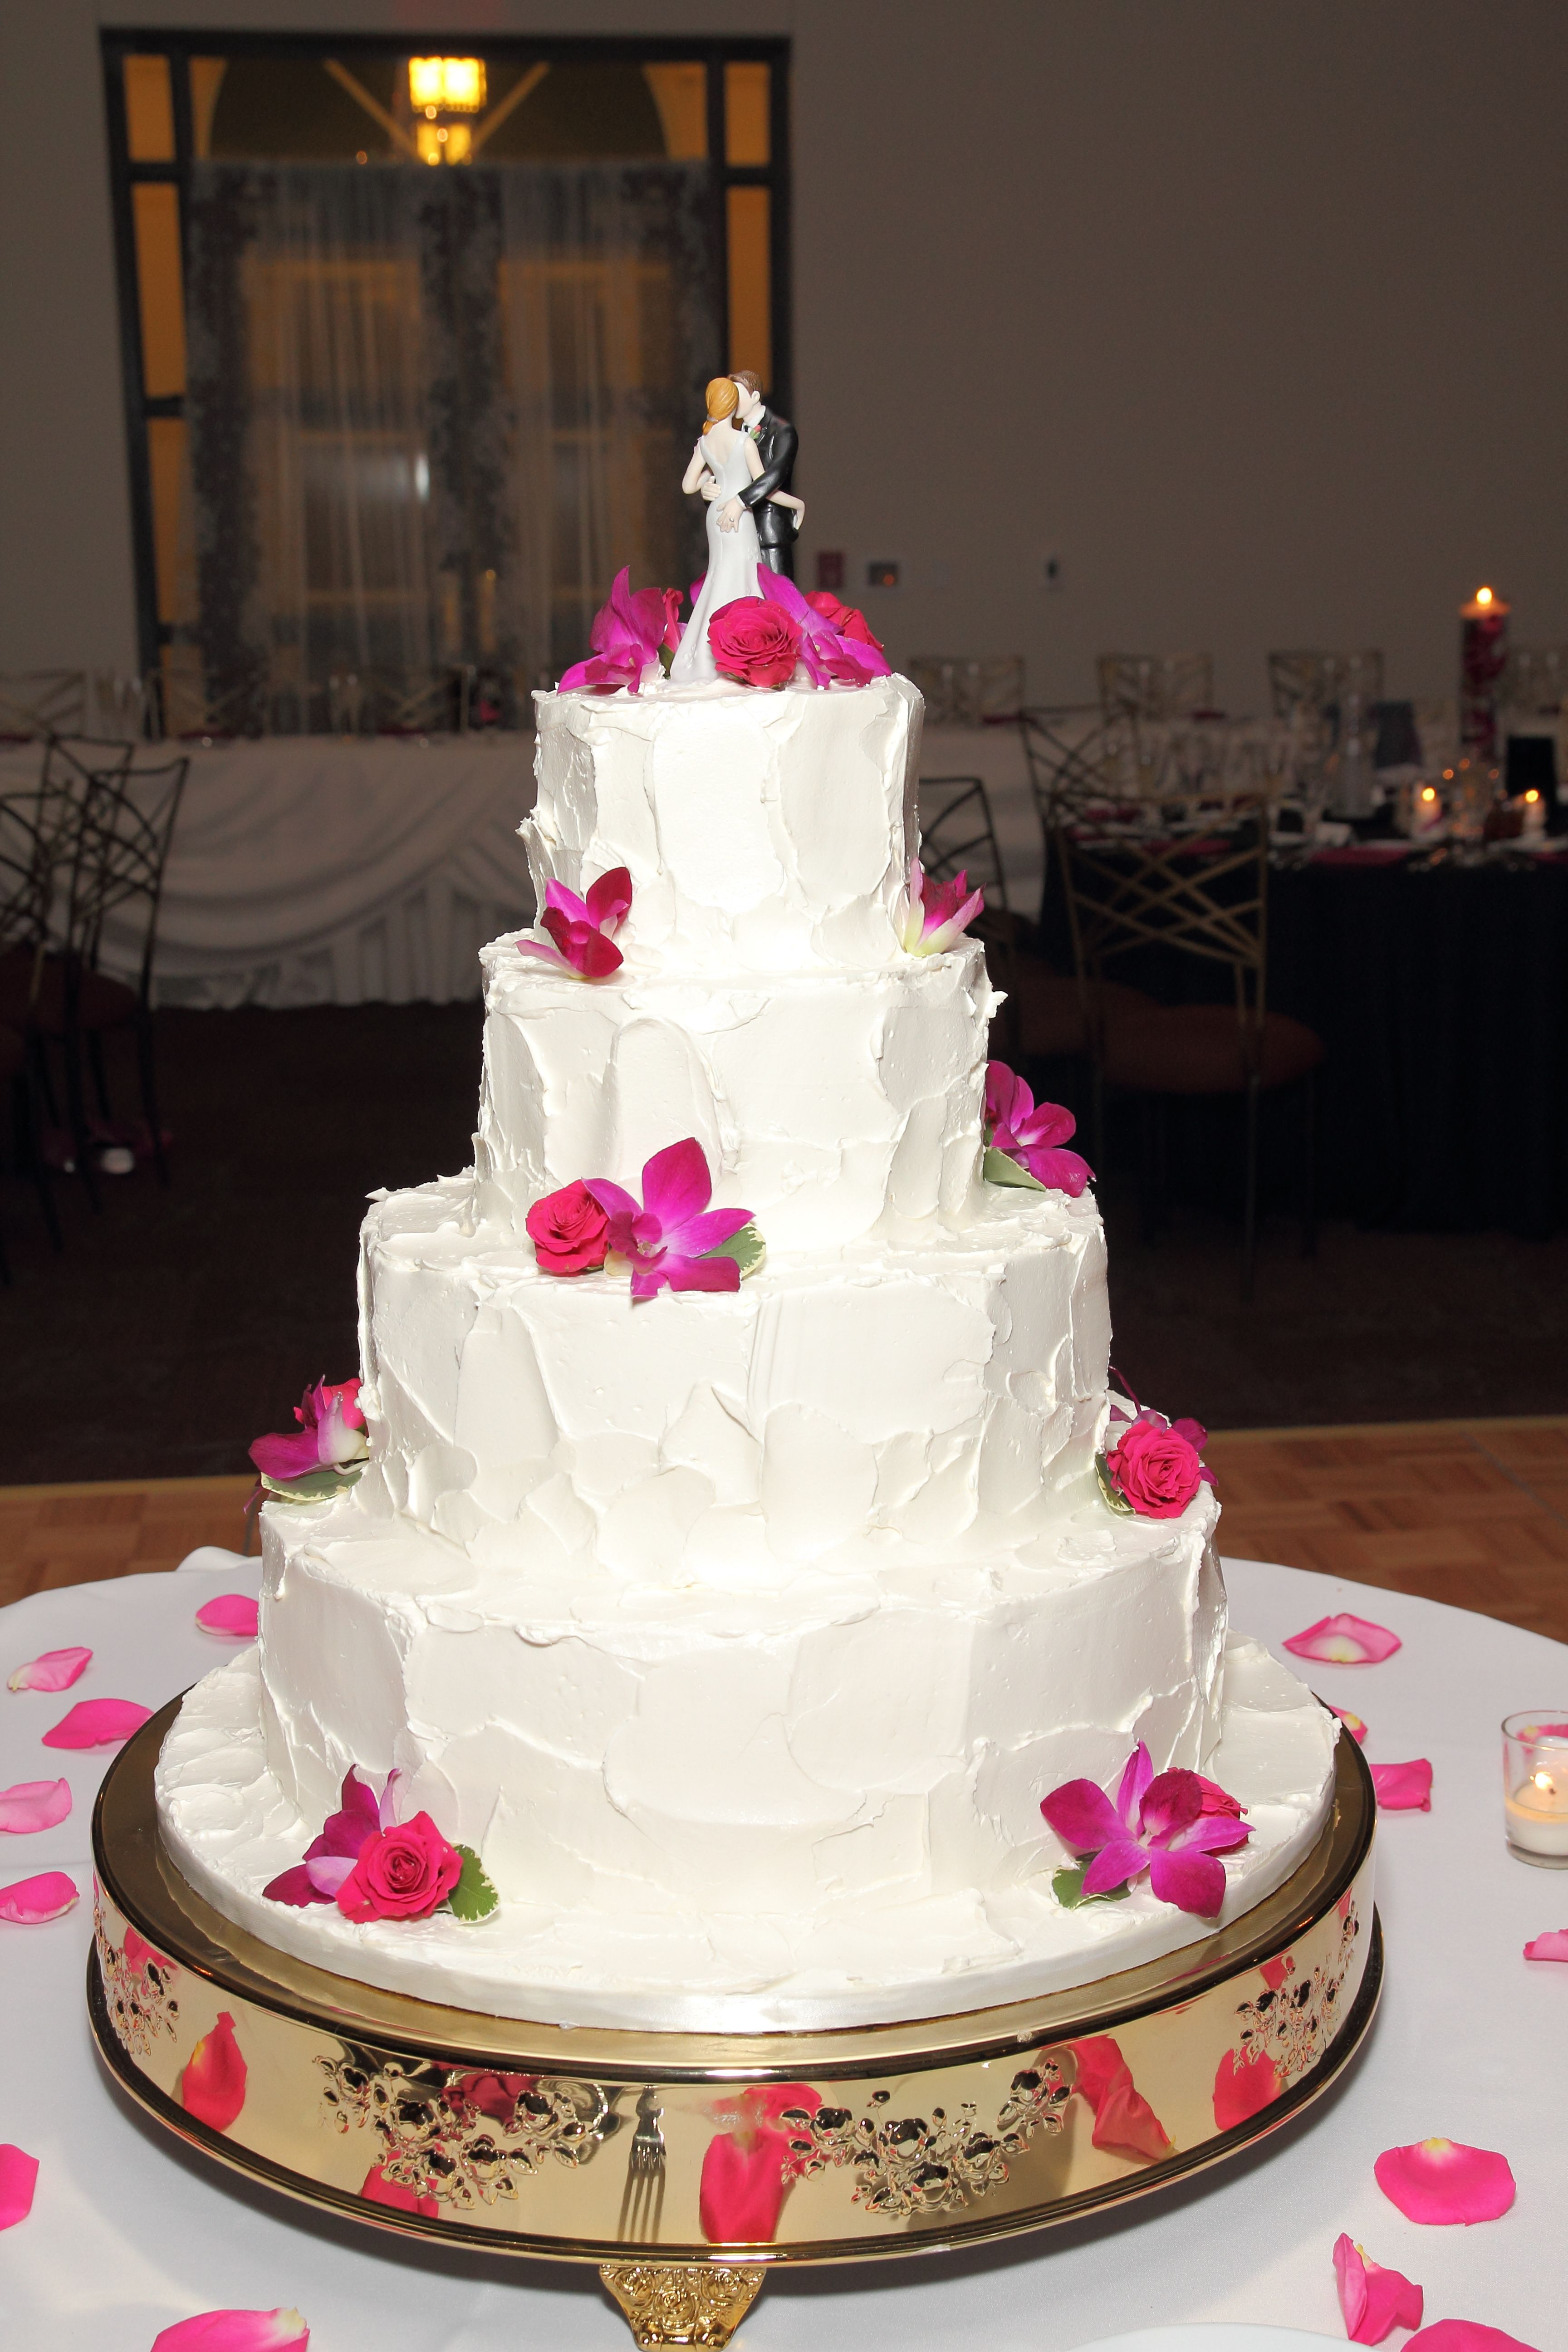 My Wedding Cake Super Cute With The Messy Icing Instead